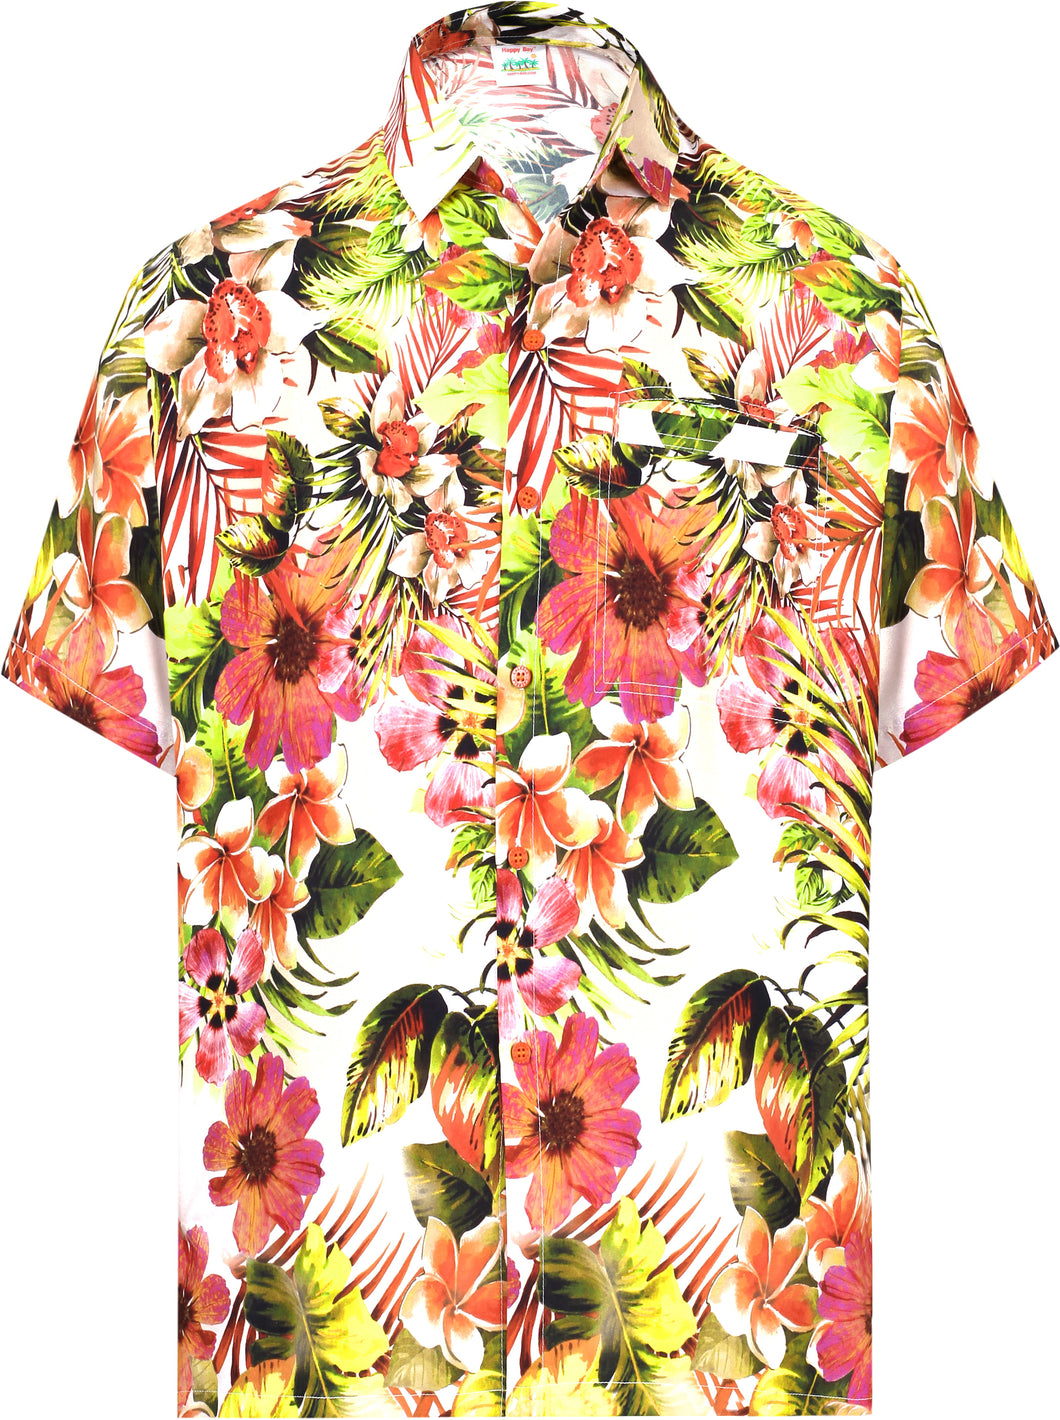 la-leela-shirt-casual-button-down-short-sleeve-beach-shirt-men-aloha-pocket-Shirt-Cream_AA233